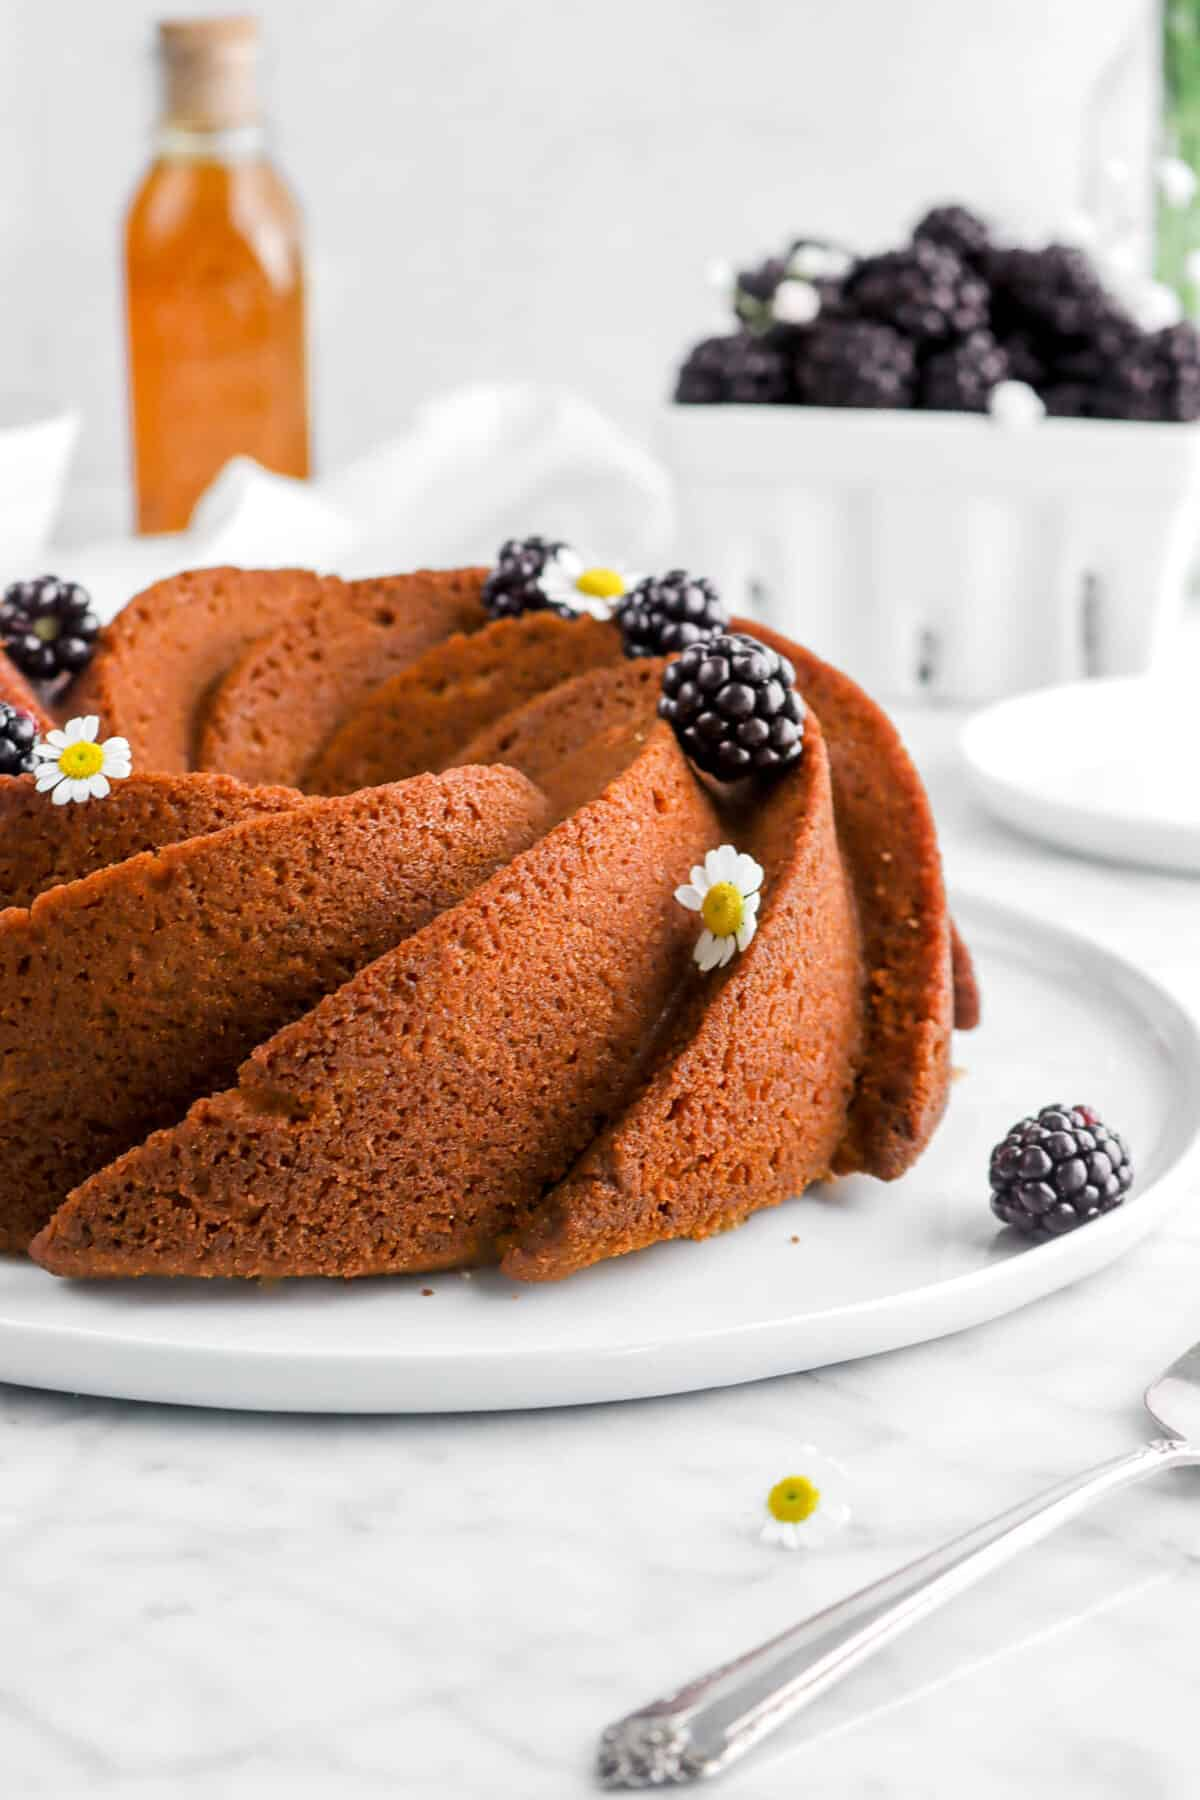 close up of spice cake on white plate with whole blackberries and flowers